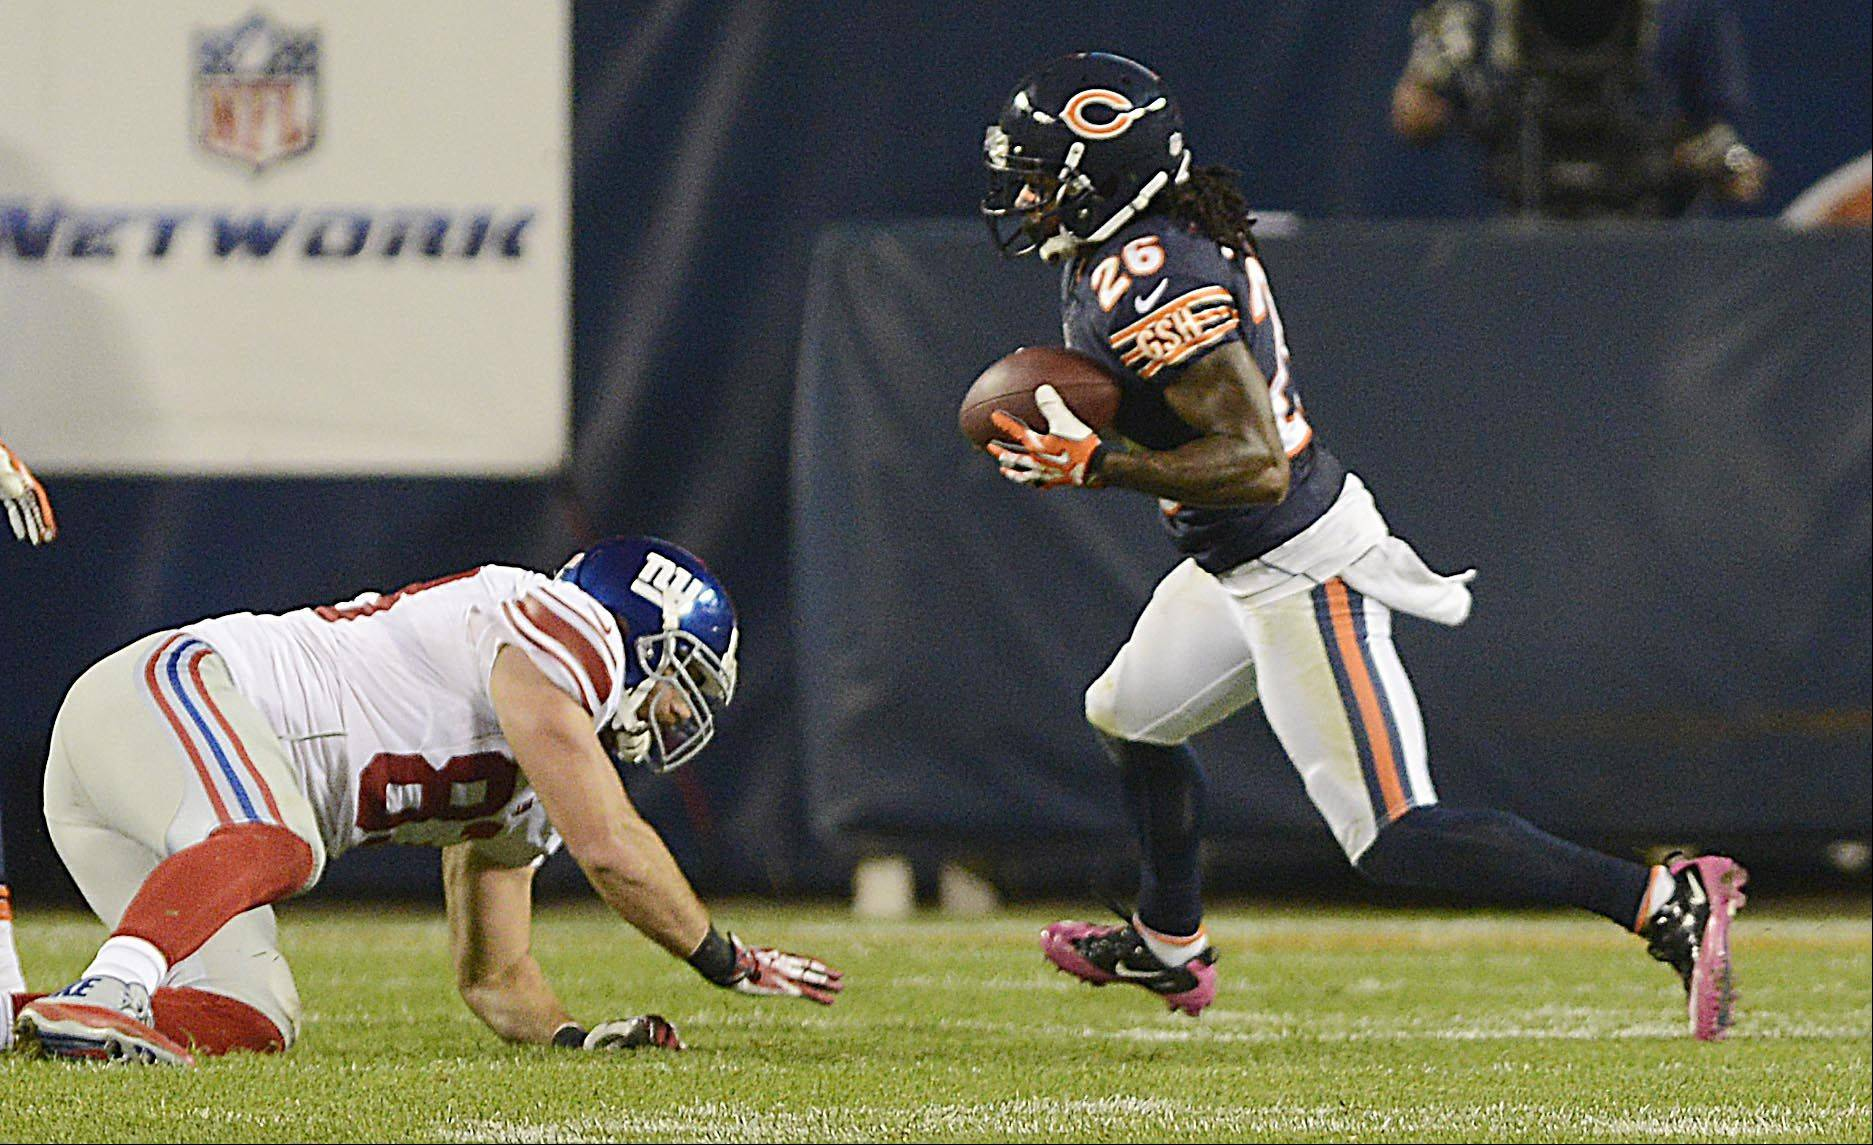 Chicago Bears cornerback Tim Jennings runs back a second interception of the night.